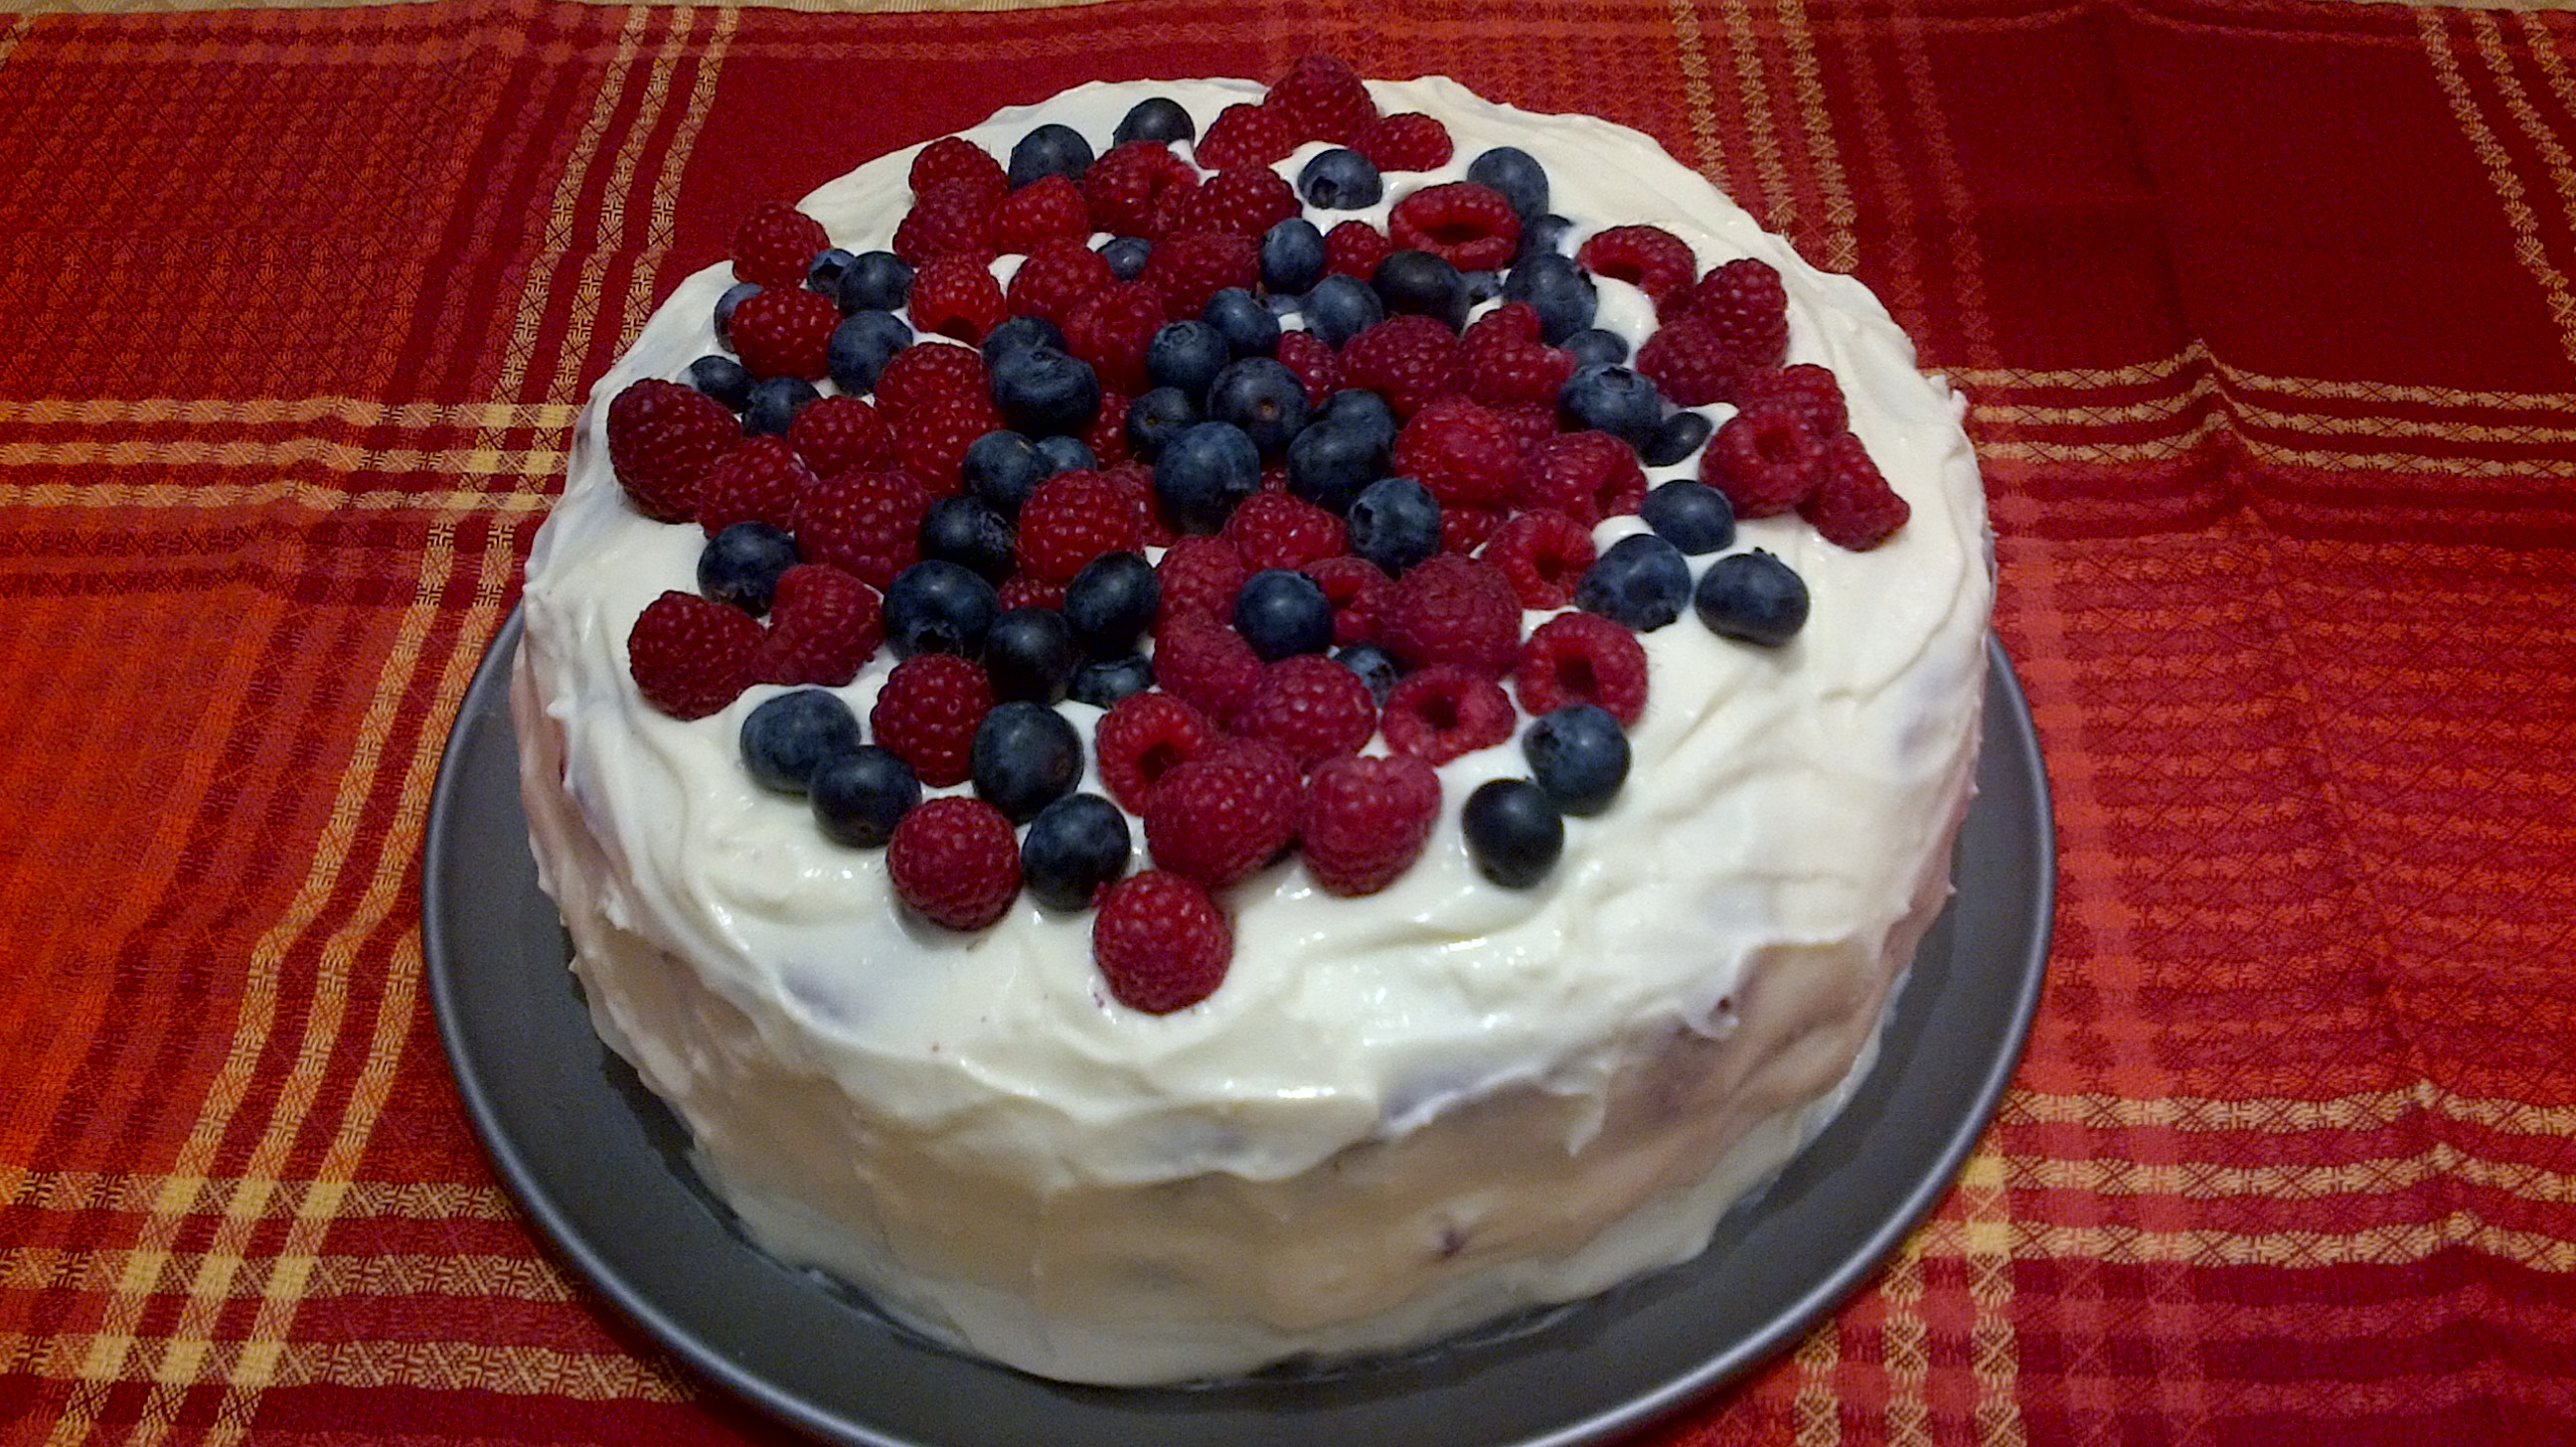 ... food views red velvet cake with raspberries and blueberries 108256